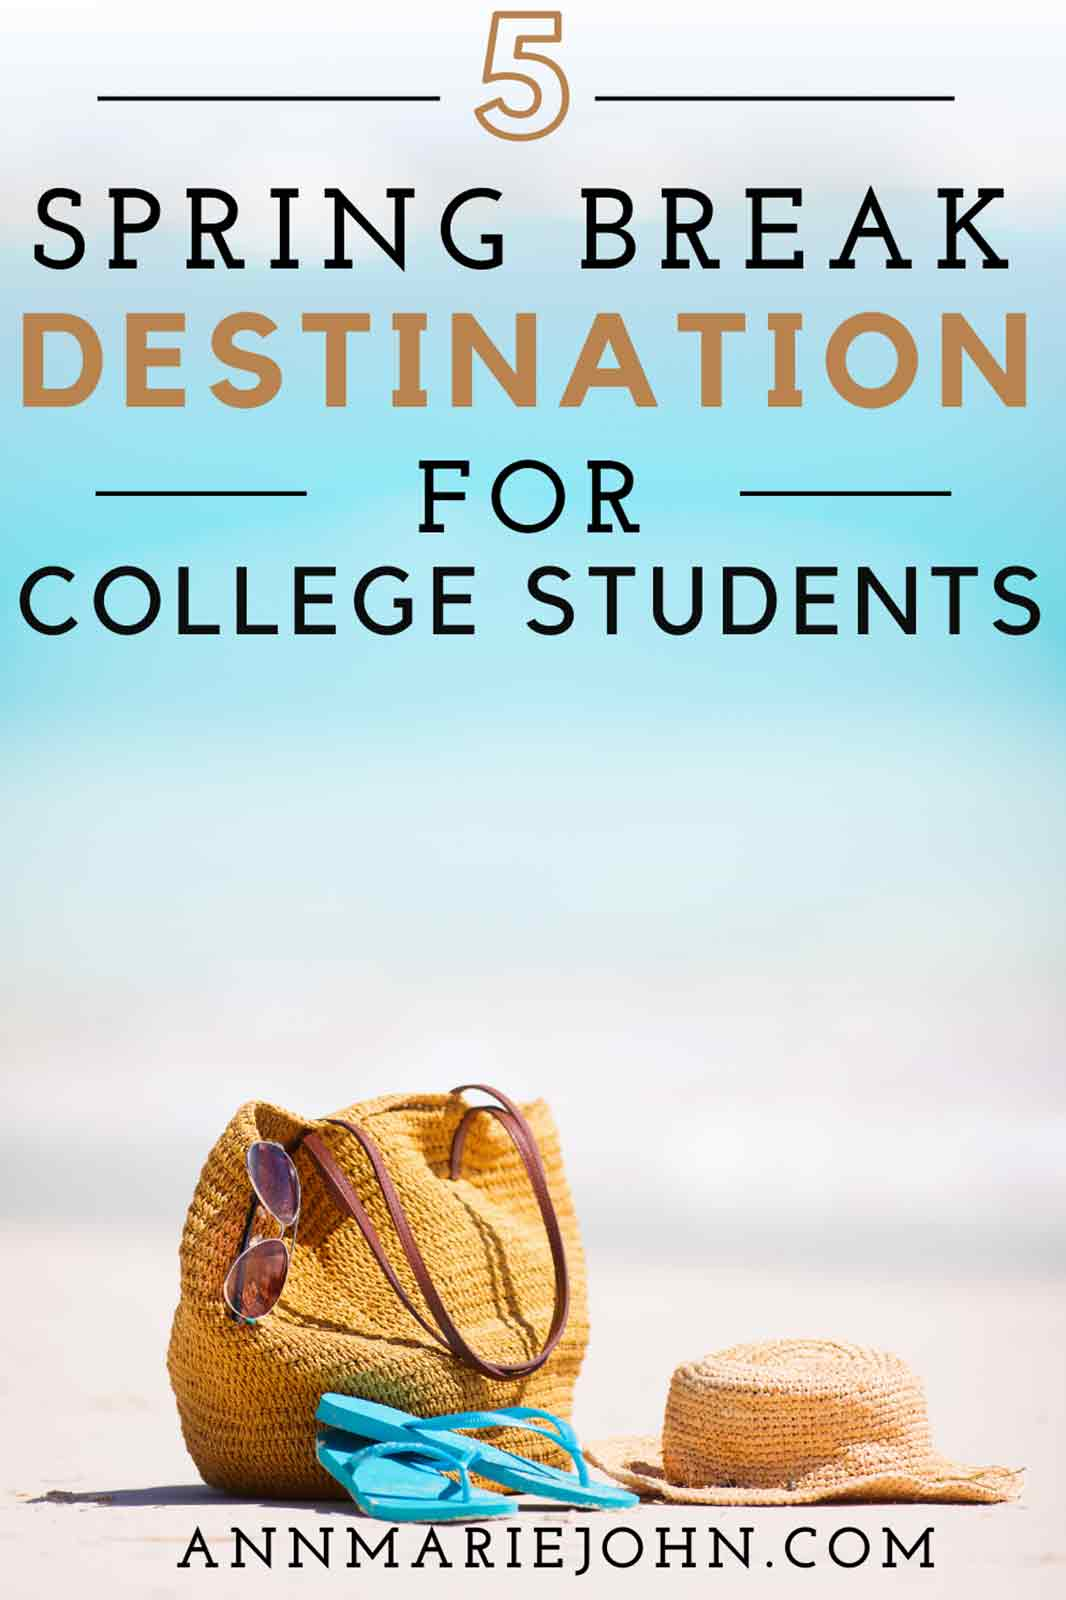 Spring Break Destinations for College Students